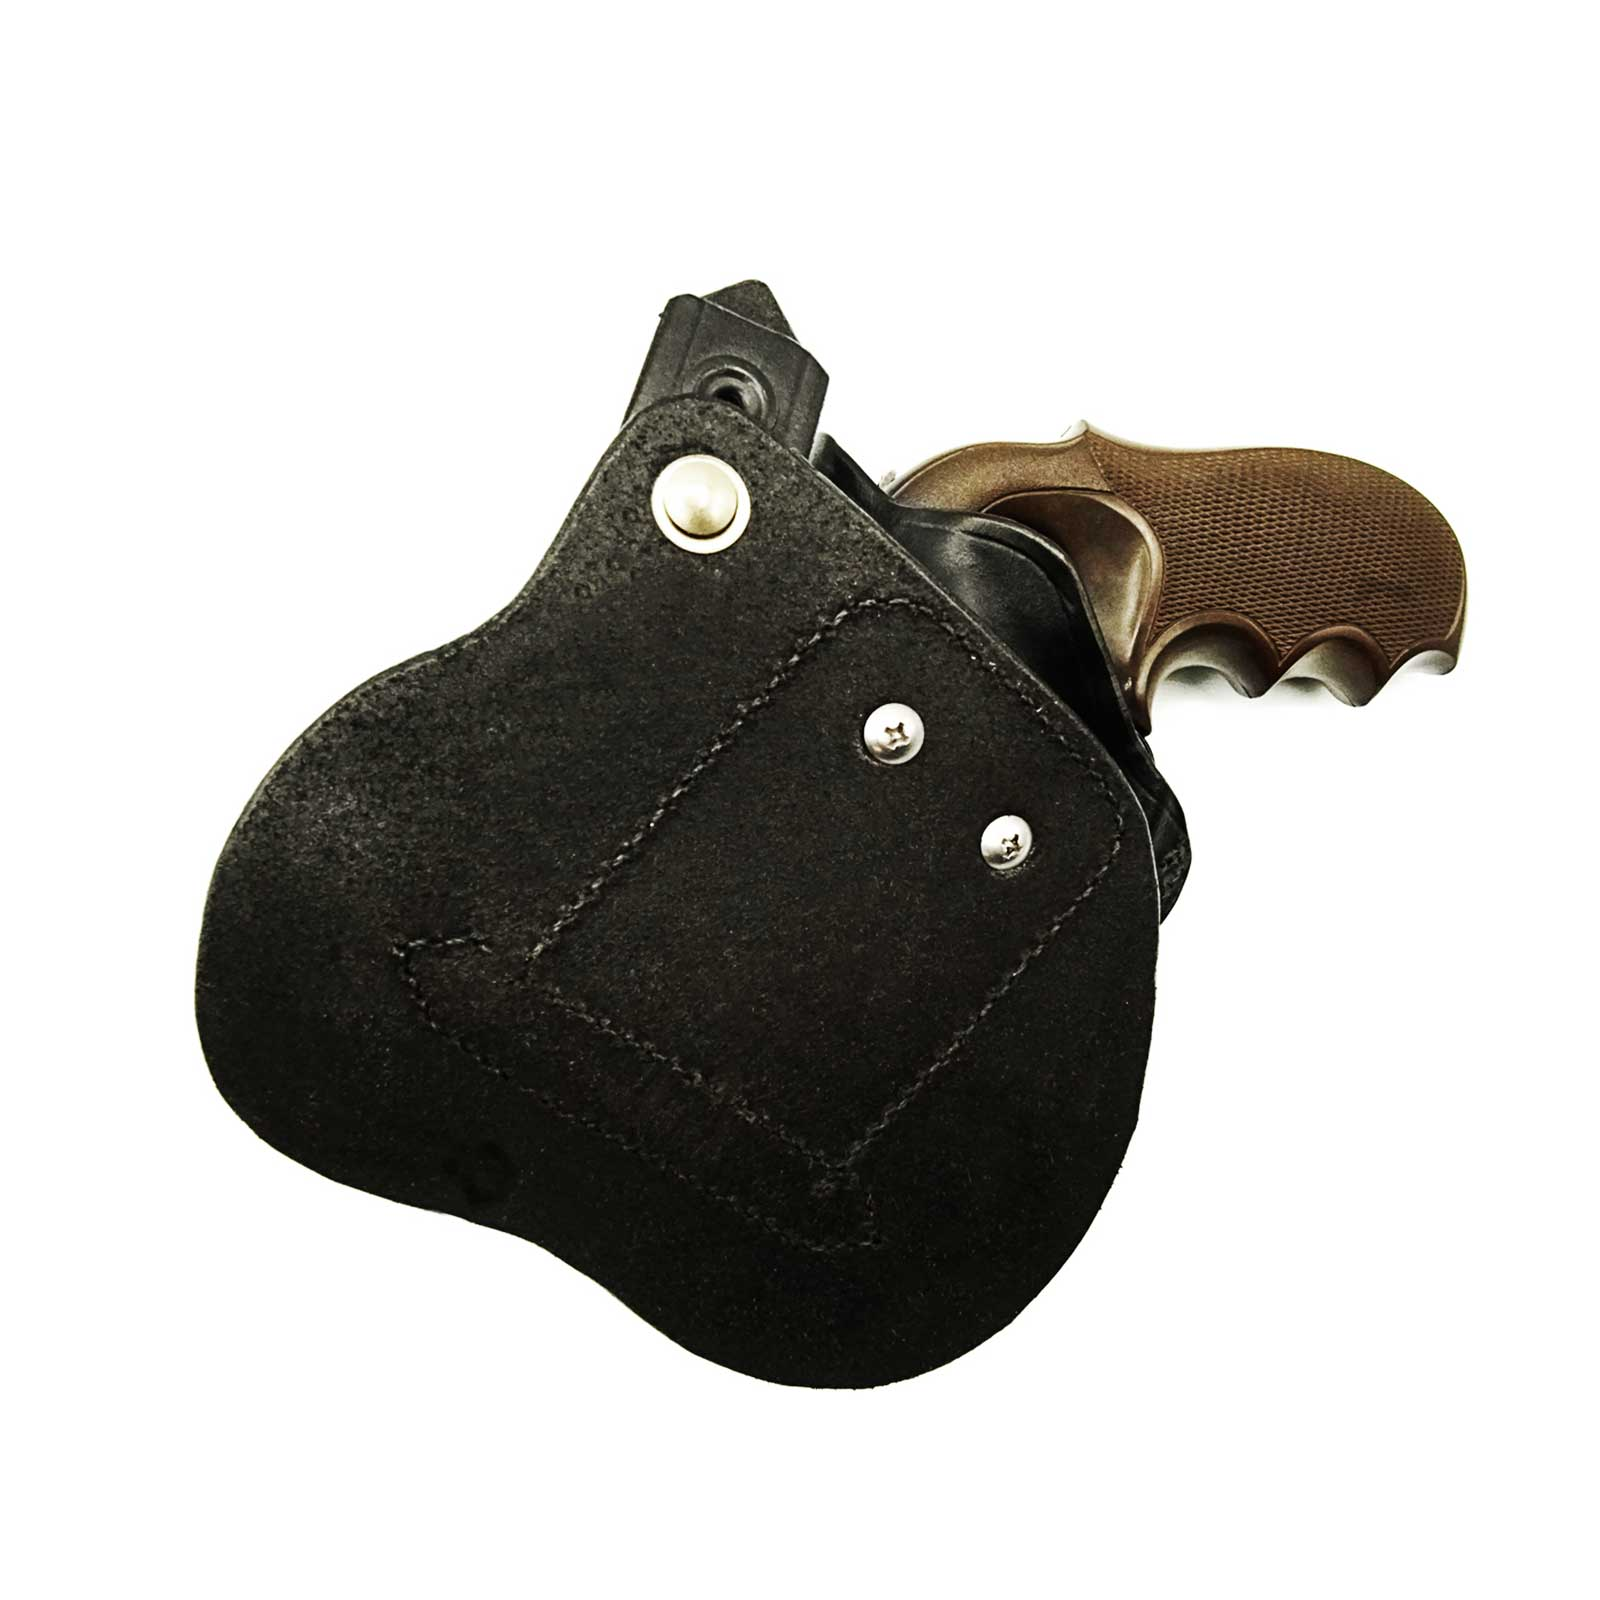 Kramer Leather - MSP Paddle Gun Holster - kramerleather